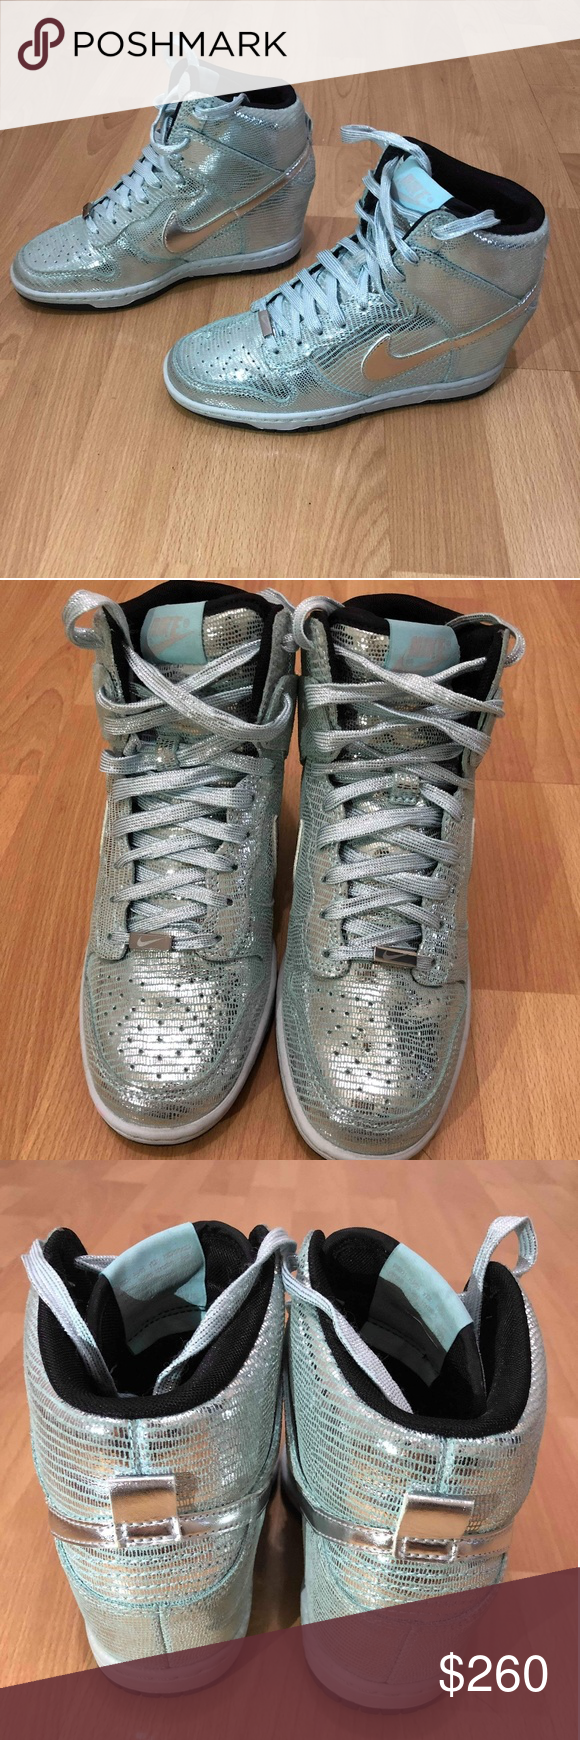 finest selection ee3f4 ae0ae Nike Dunk Sky Hi QS Wedge Disco Ball silver womens Nike Dunk Sky Hi QS  Wedge Disco Ball silver womens size 5.5 shoes 637991-001 ITEM FEATURES!